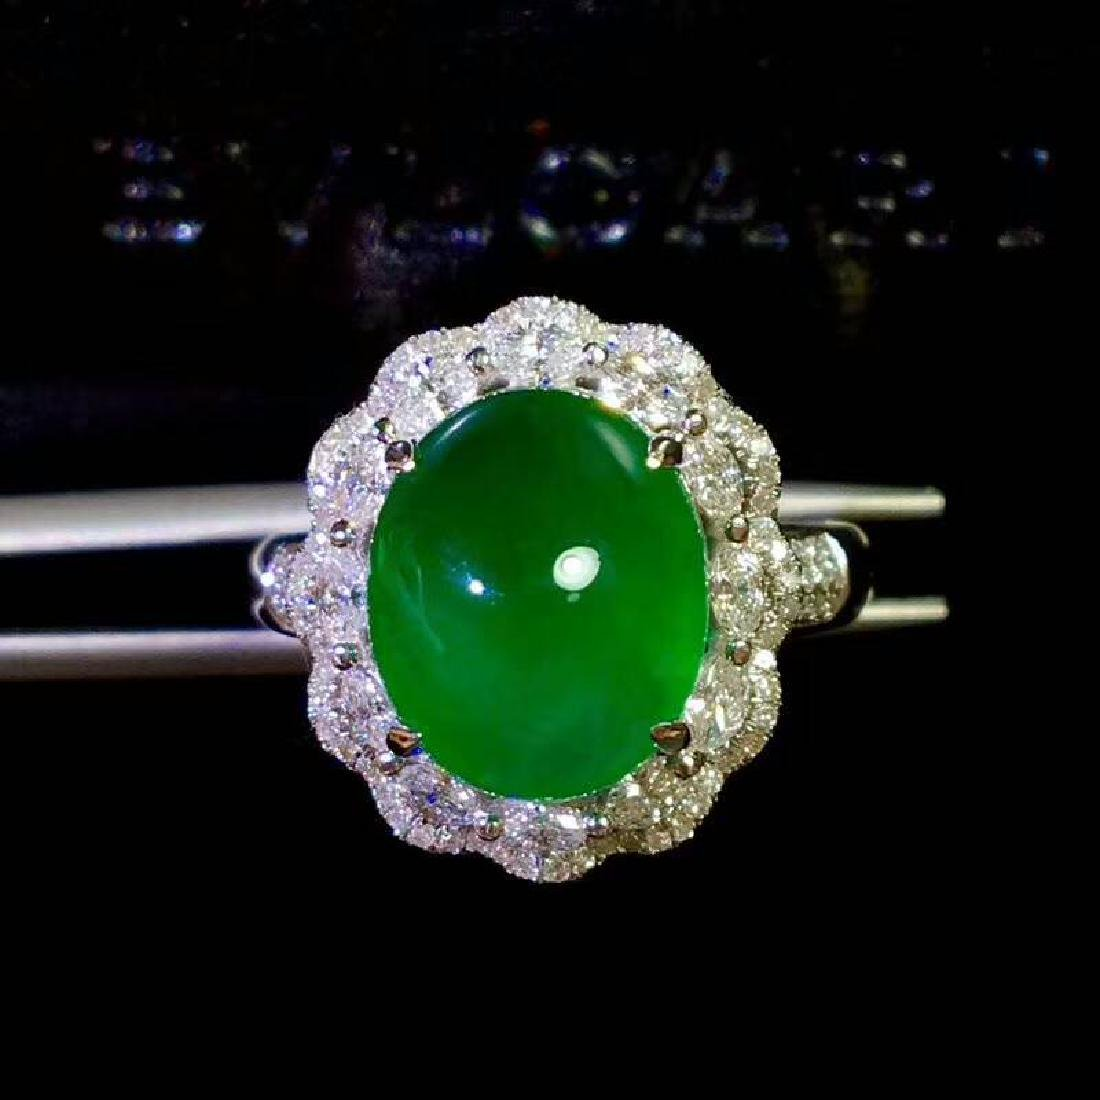 6.9ct Emerald Ring in 18kt White Gold